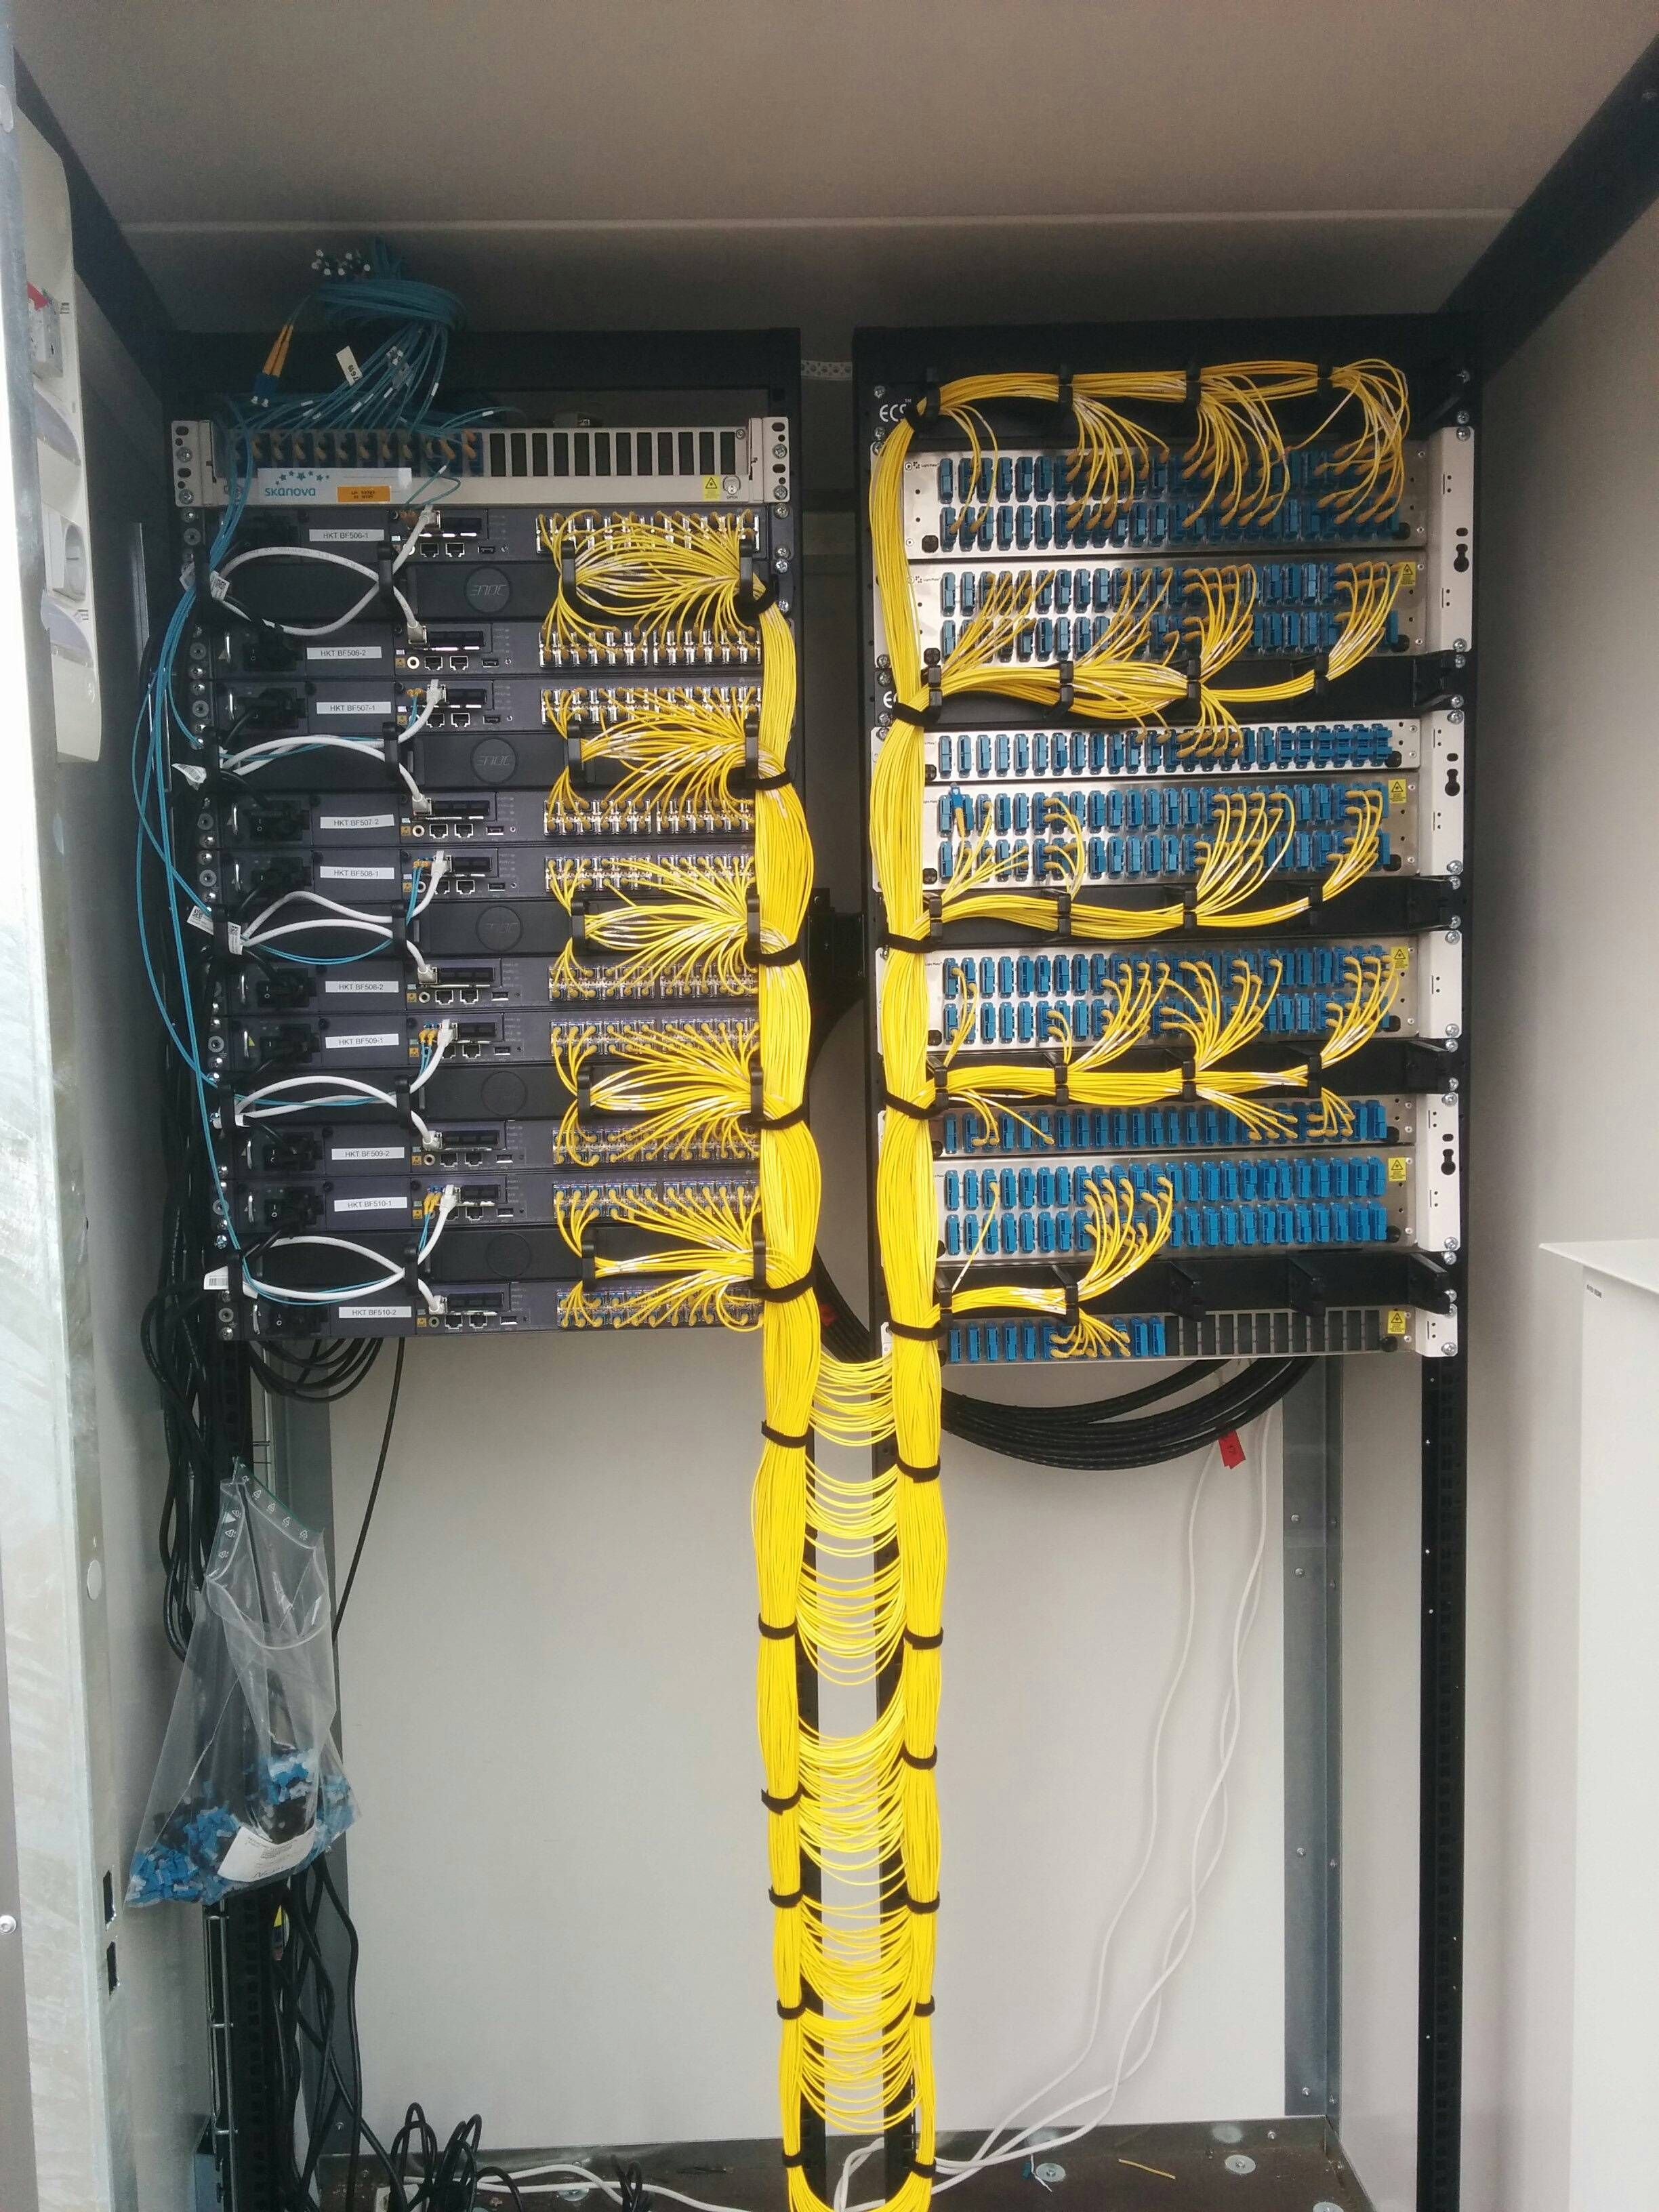 hight resolution of about structured wiring on pinterest home wiring fiber and cable wiring cable management on pinterest cable management cable and